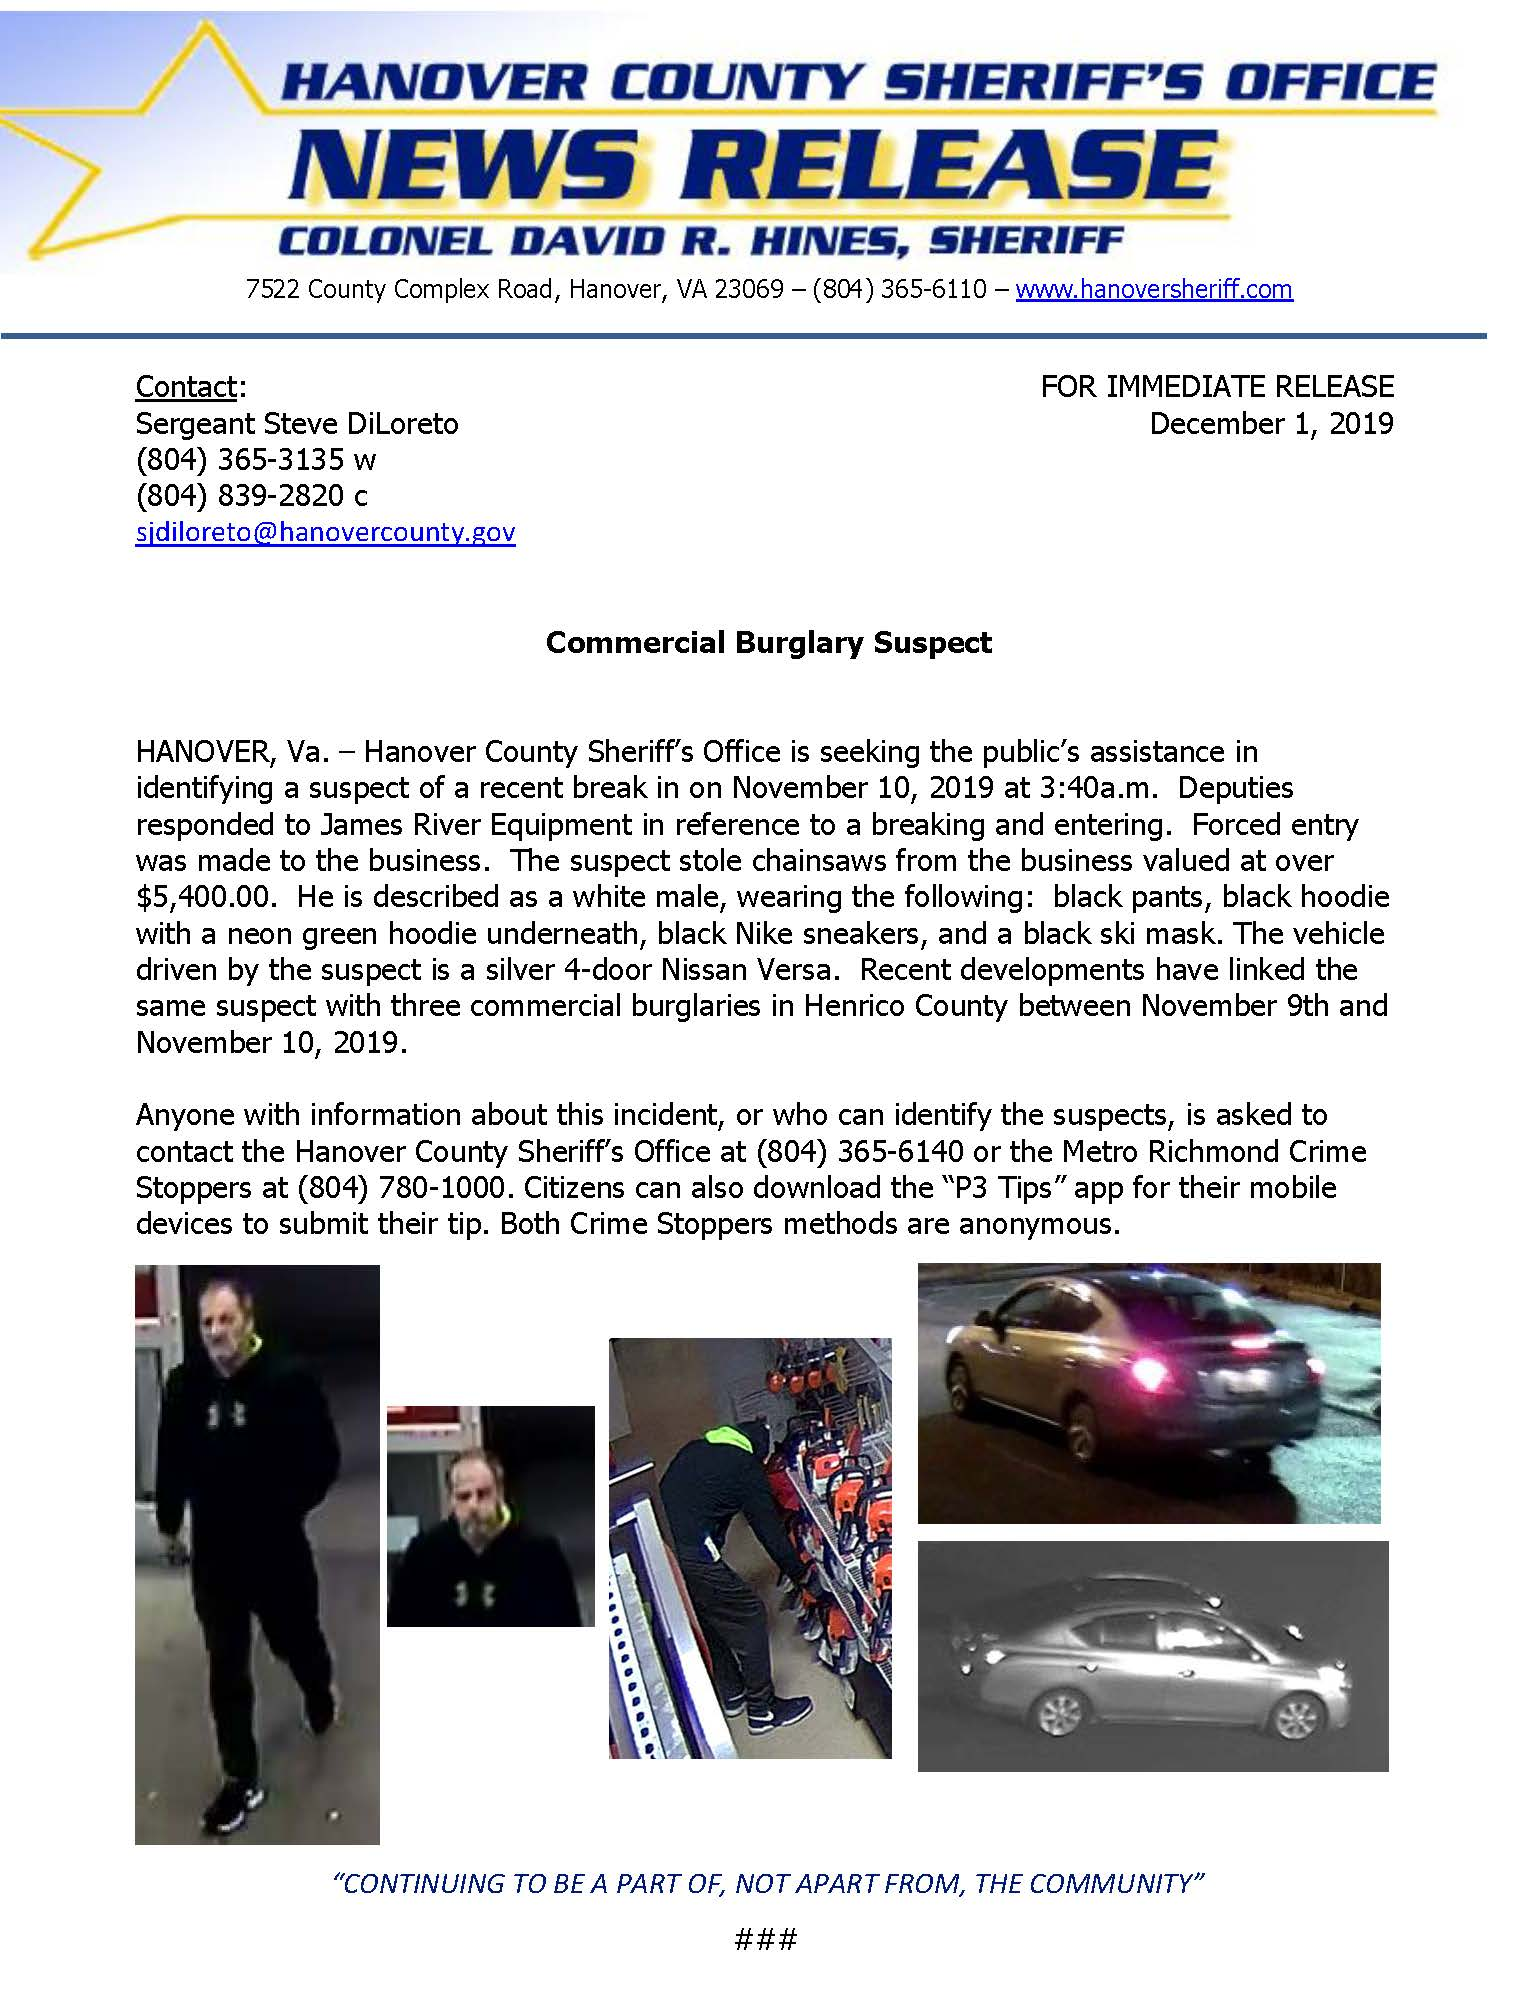 HCSO Commercial Burglary Suspect 01DEC2019